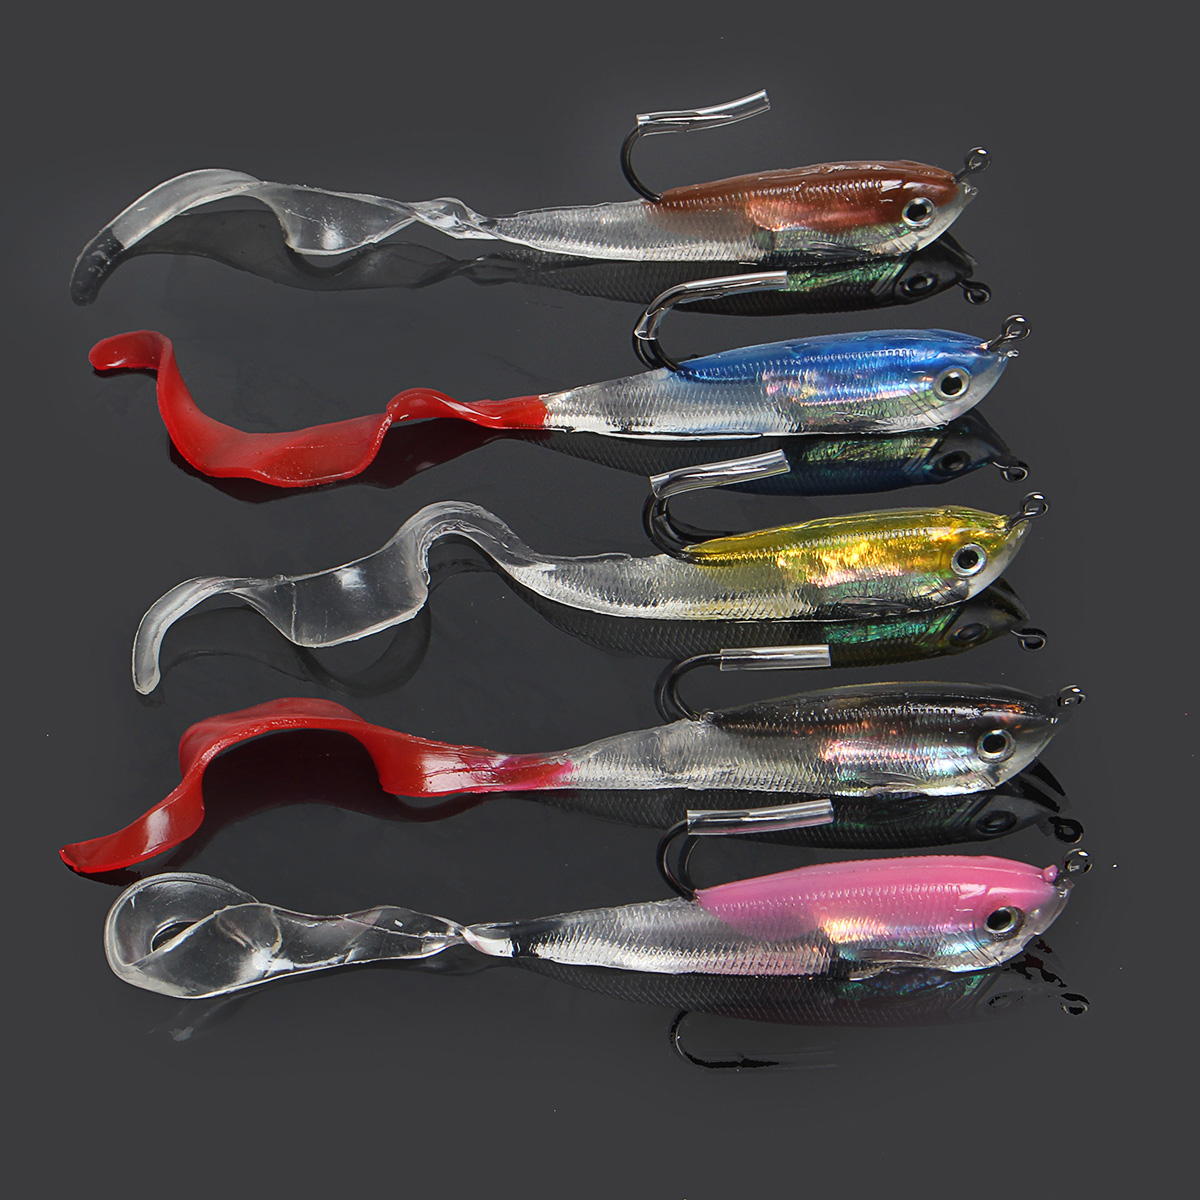 ZANLURE 5pcs 10cm 14.7g Pencil Soft Fishing Lure 5 Colors Soft Baits Hook Salt/Freshwater Fishing